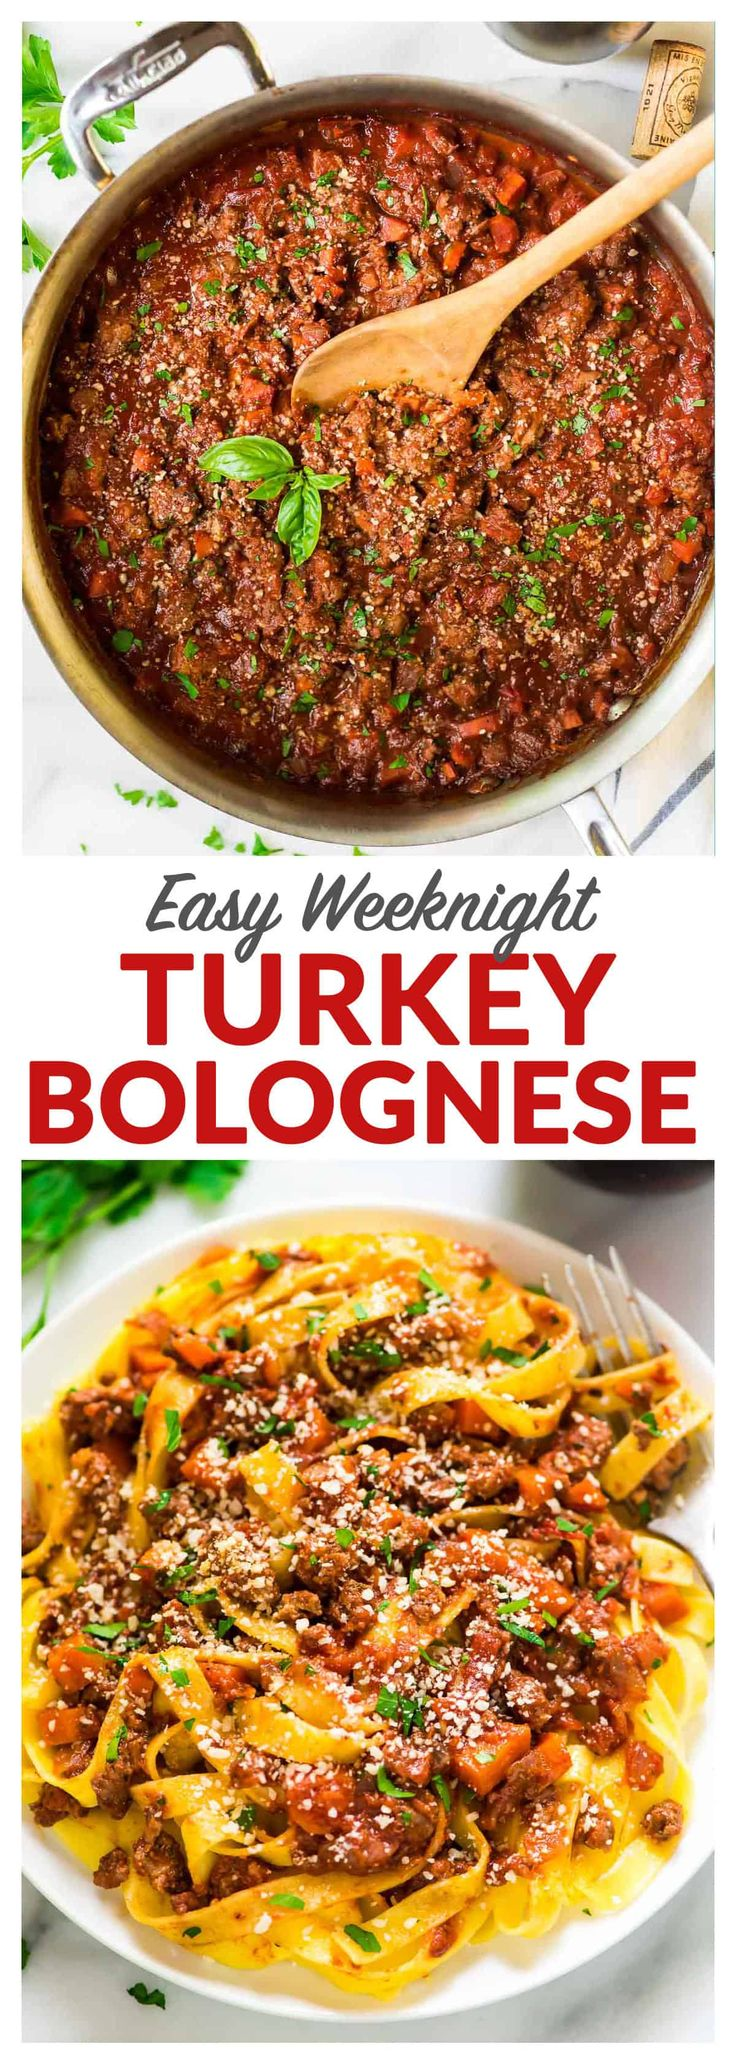 Turkey bologneseis an easy and healthy pasta sauce recipe.The thick, rich sauce tastes like it's been simmering all day, but it's ready in 45 minutes. Perfect for a weeknight dinner! #healthy #recipe #pasta #spaghetti